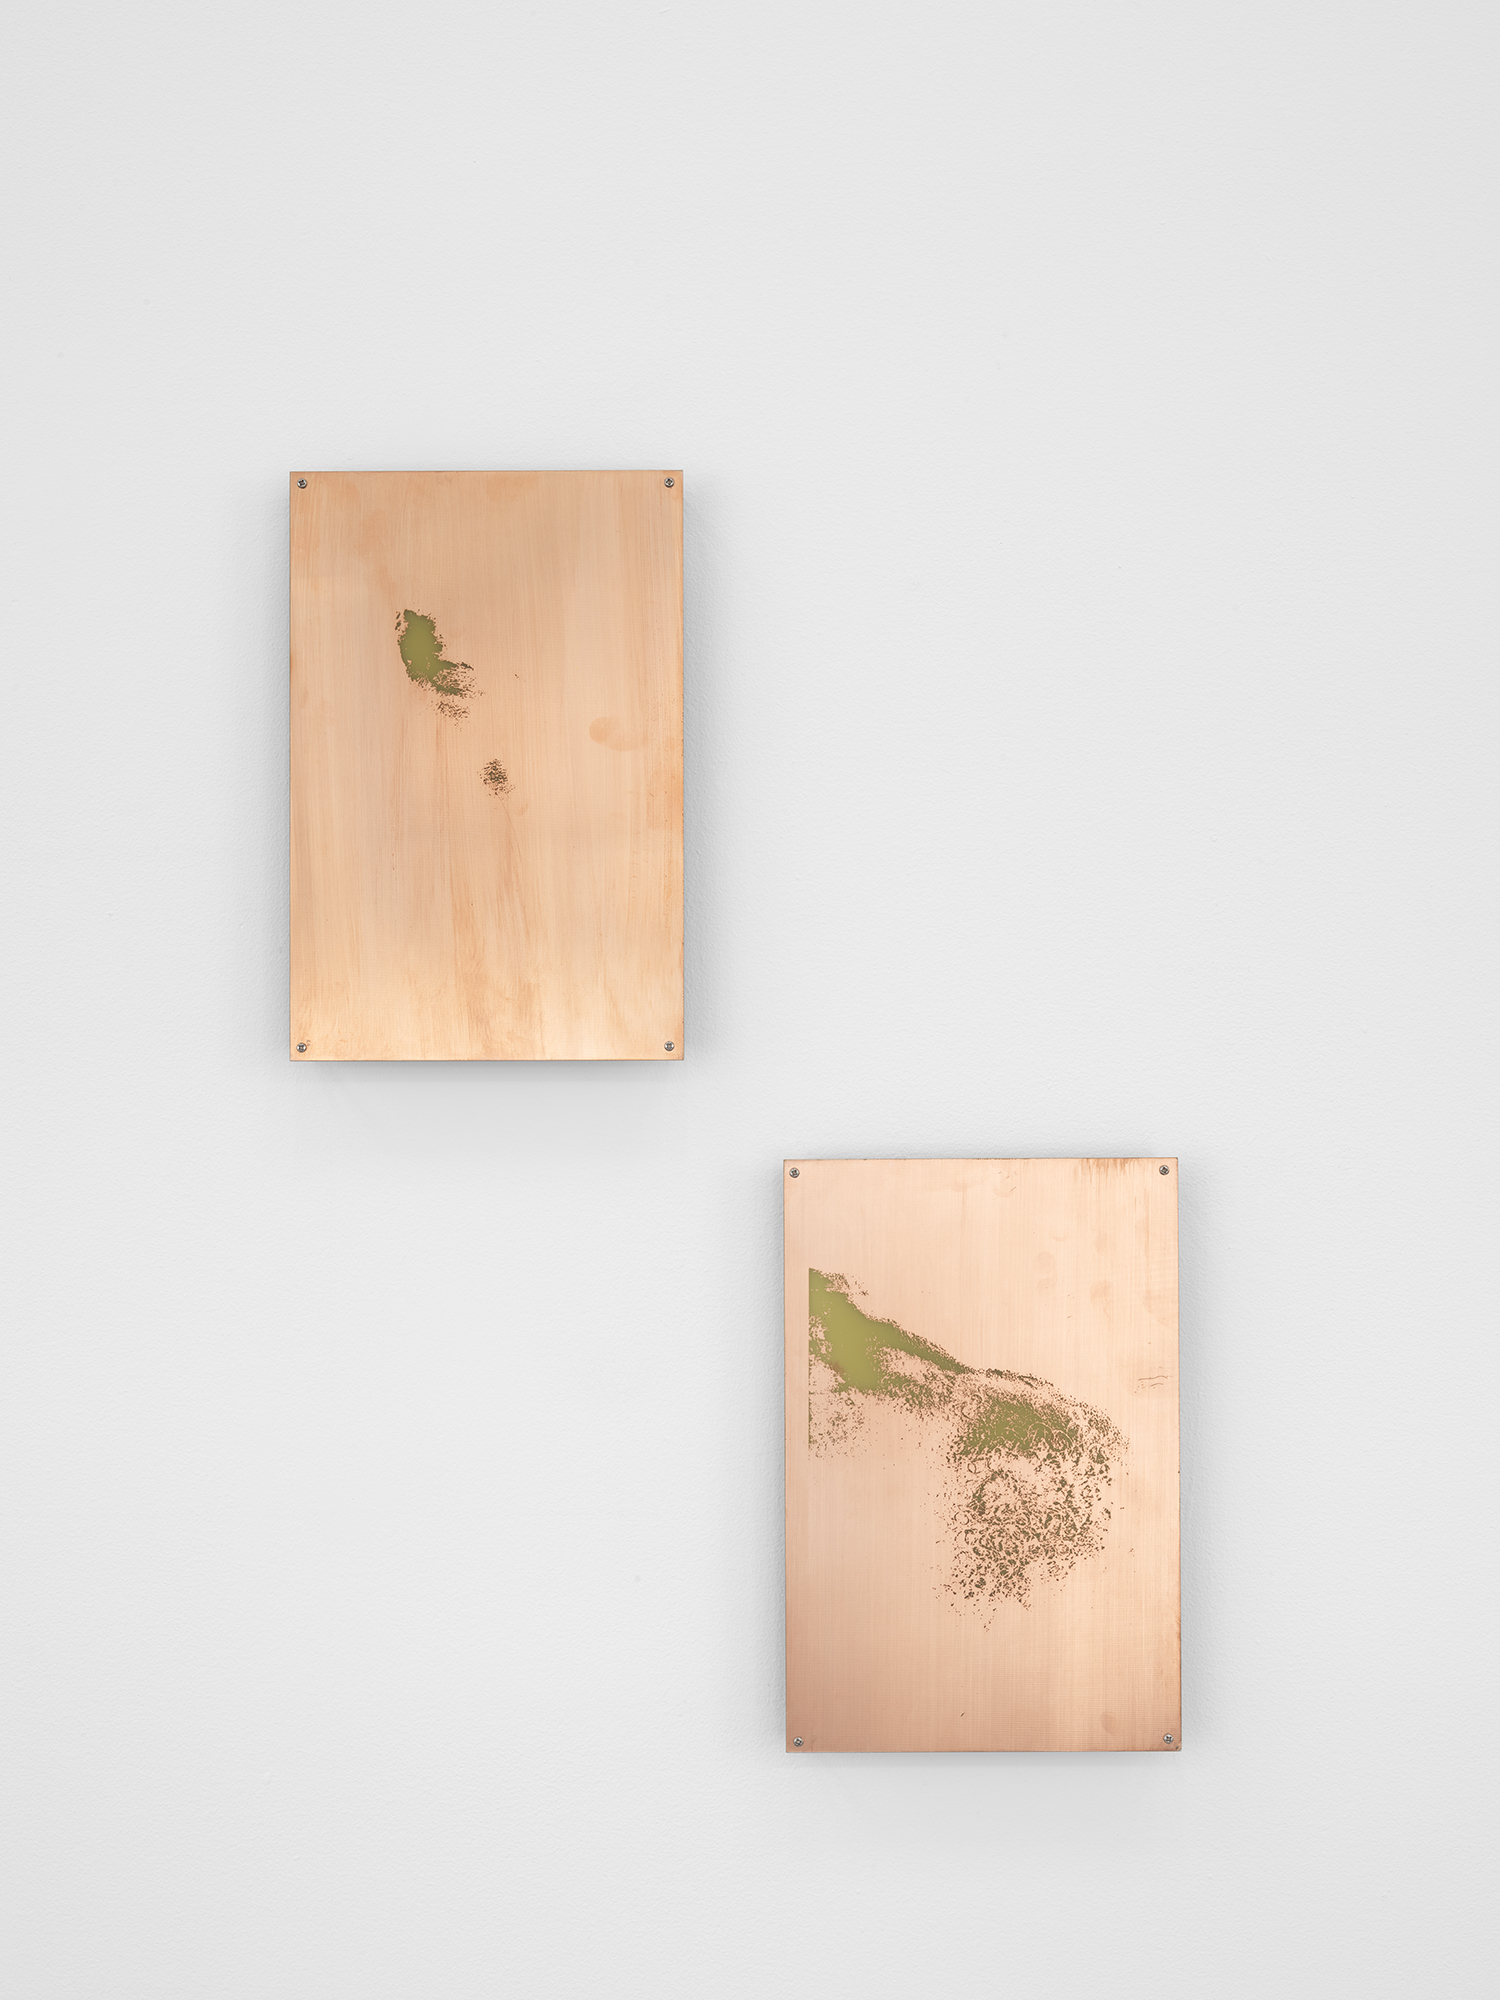 Body Print (Laryngeal Prominence, Sternum and Attending Soft Tissues)   2017  Etched copper-clad FR-4 glass-reinforced epoxy laminate board  12 x 8 inches each, 2 parts   Body Prints, 2017–    Open Source, 2017